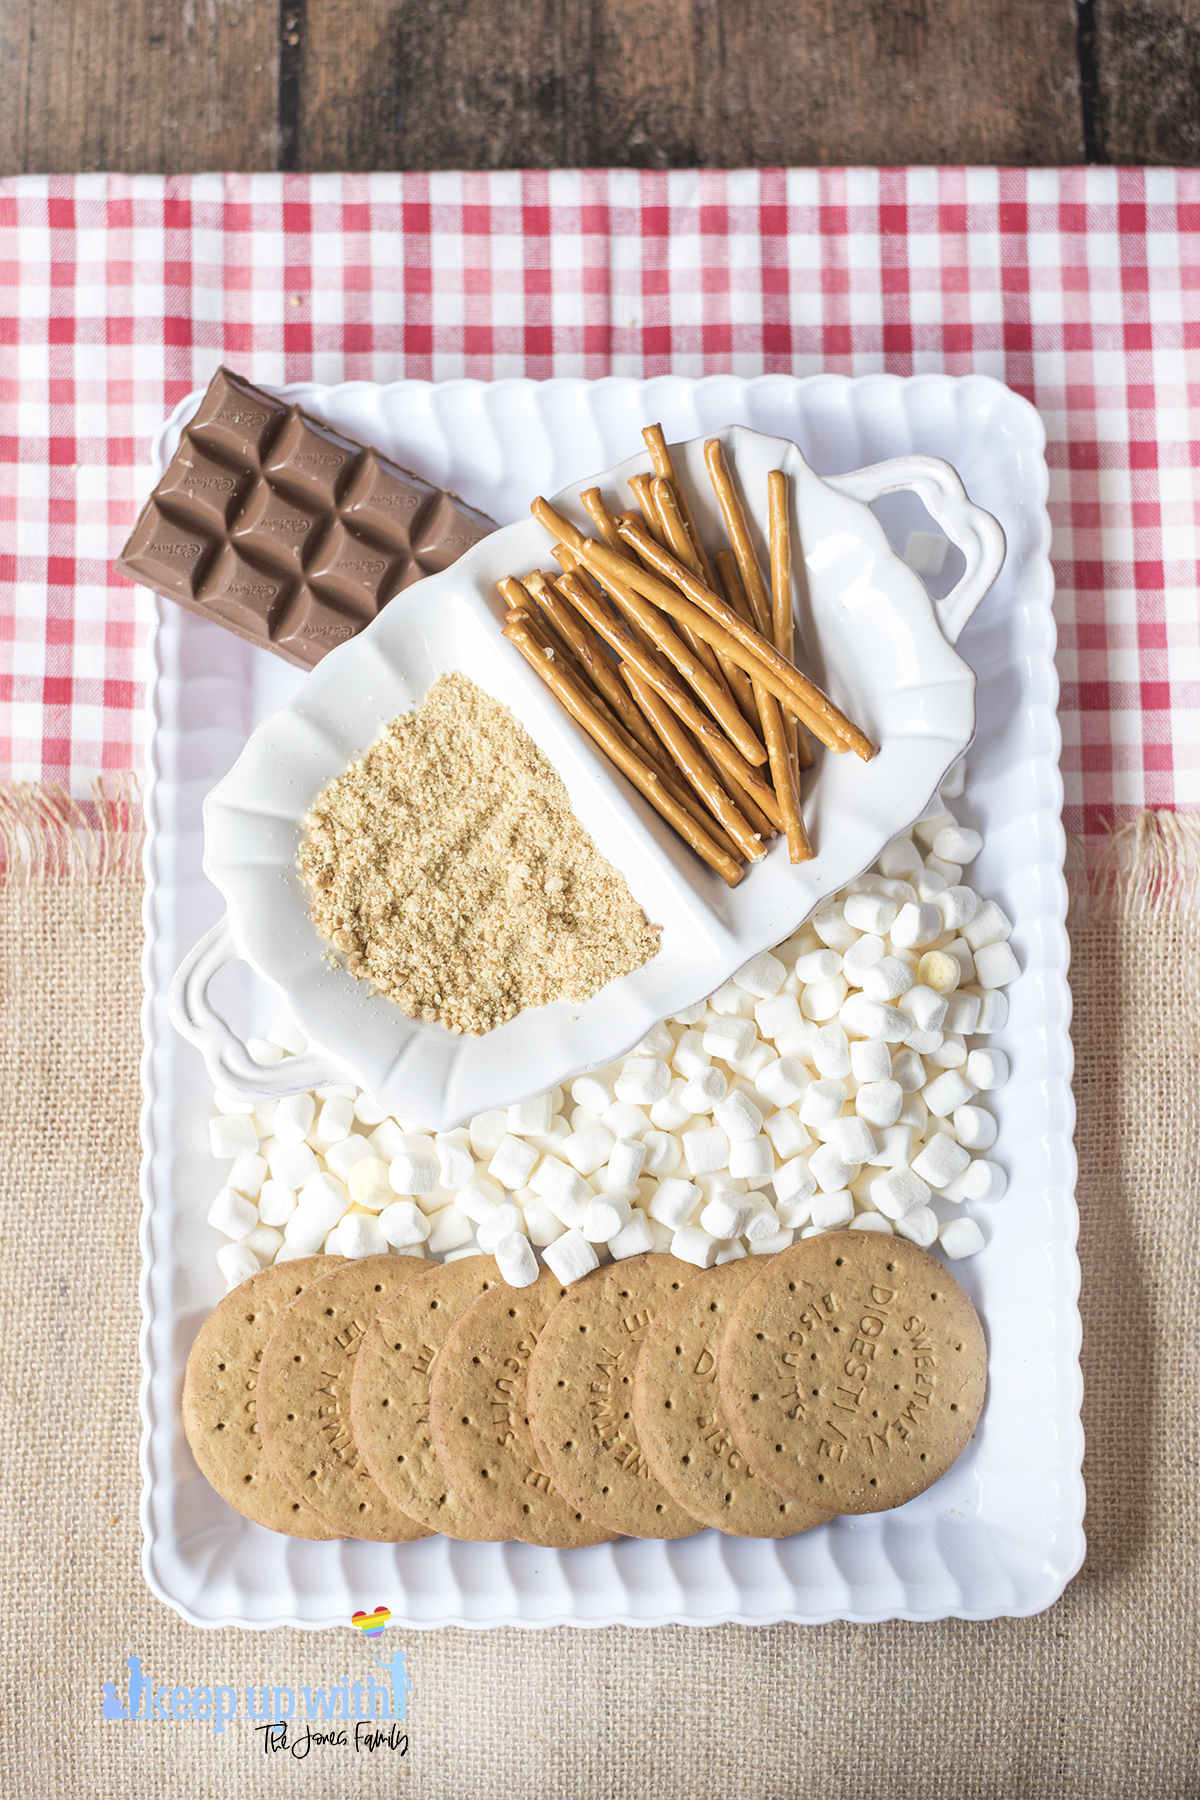 Image shows a white scalloped tray containing all of the ingredients to make Mini Campfire Chocolate Fondue Buckets. Mini marshmallows, digestive biscuits, pretzel sticks and chocolate. Image by Keep Up With The Jones Family.